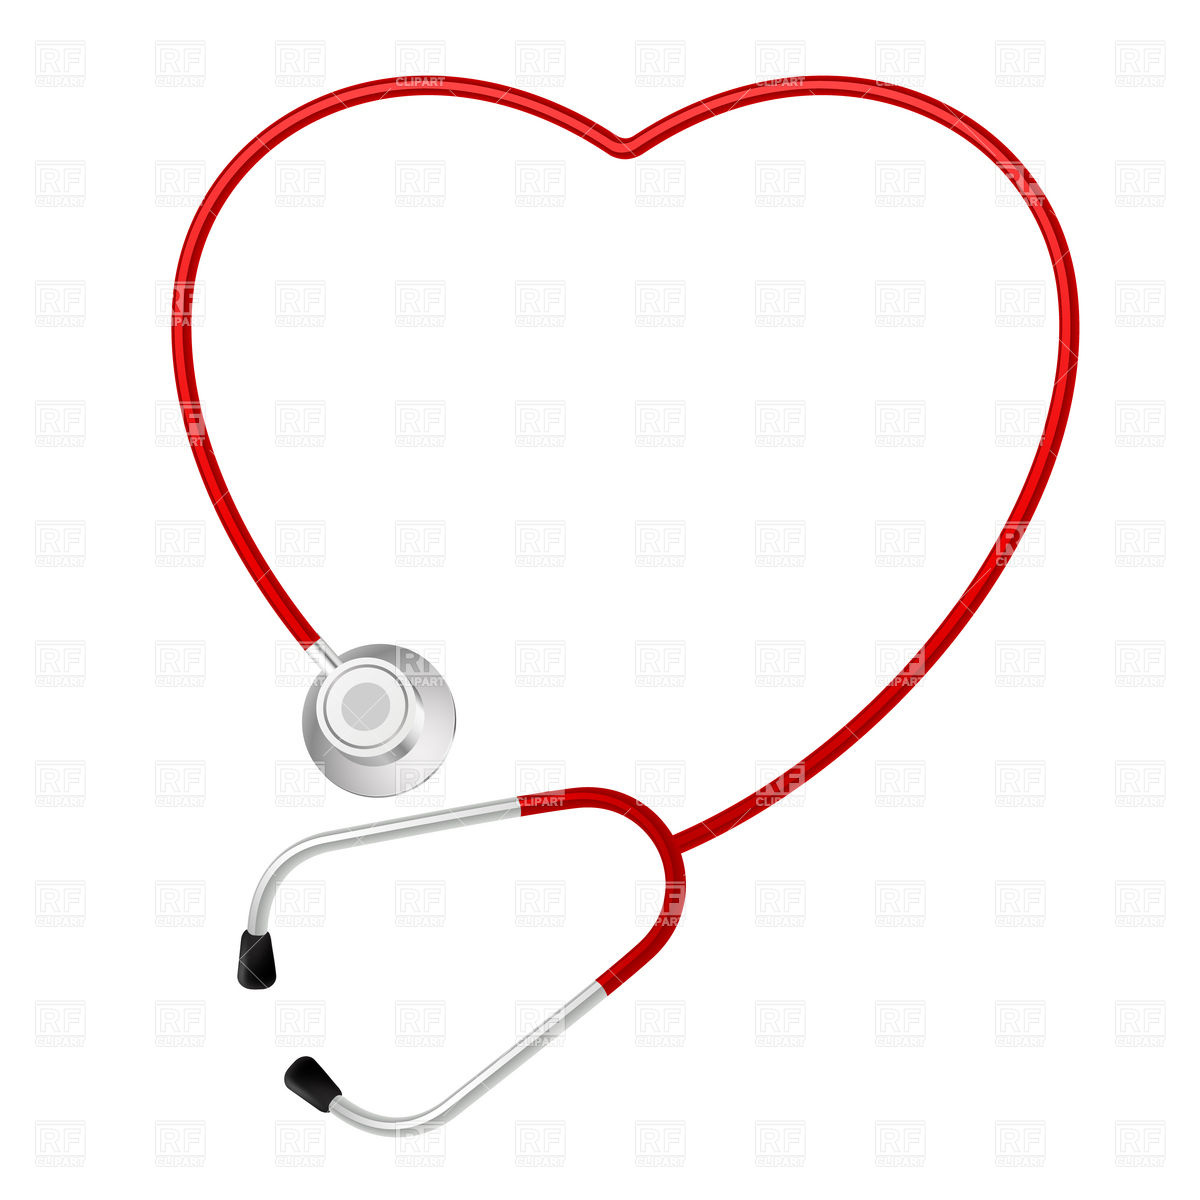 1200x1200 Heart Shaped Stethoscope Royalty Free Vector Clip Art Image